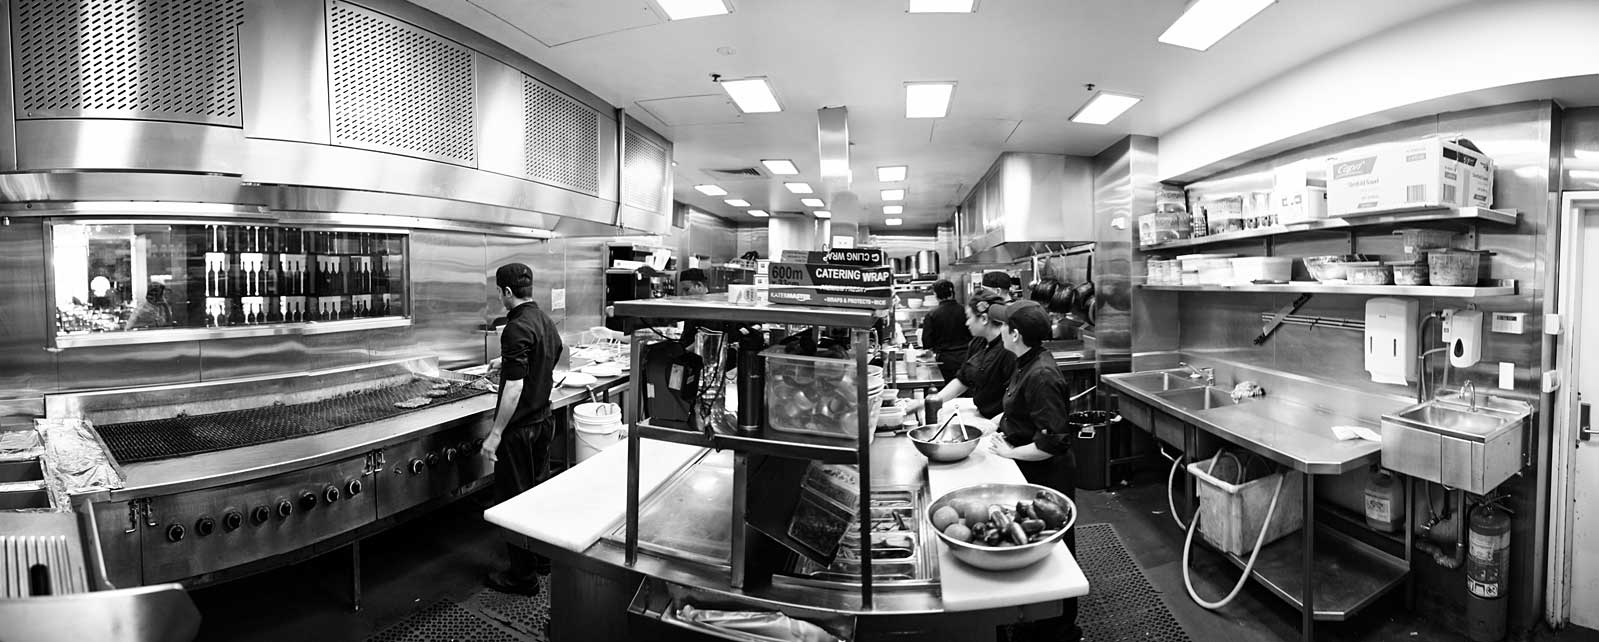 Restaurant Kitchen Operations restaurant equipment repair - phoenix arizona